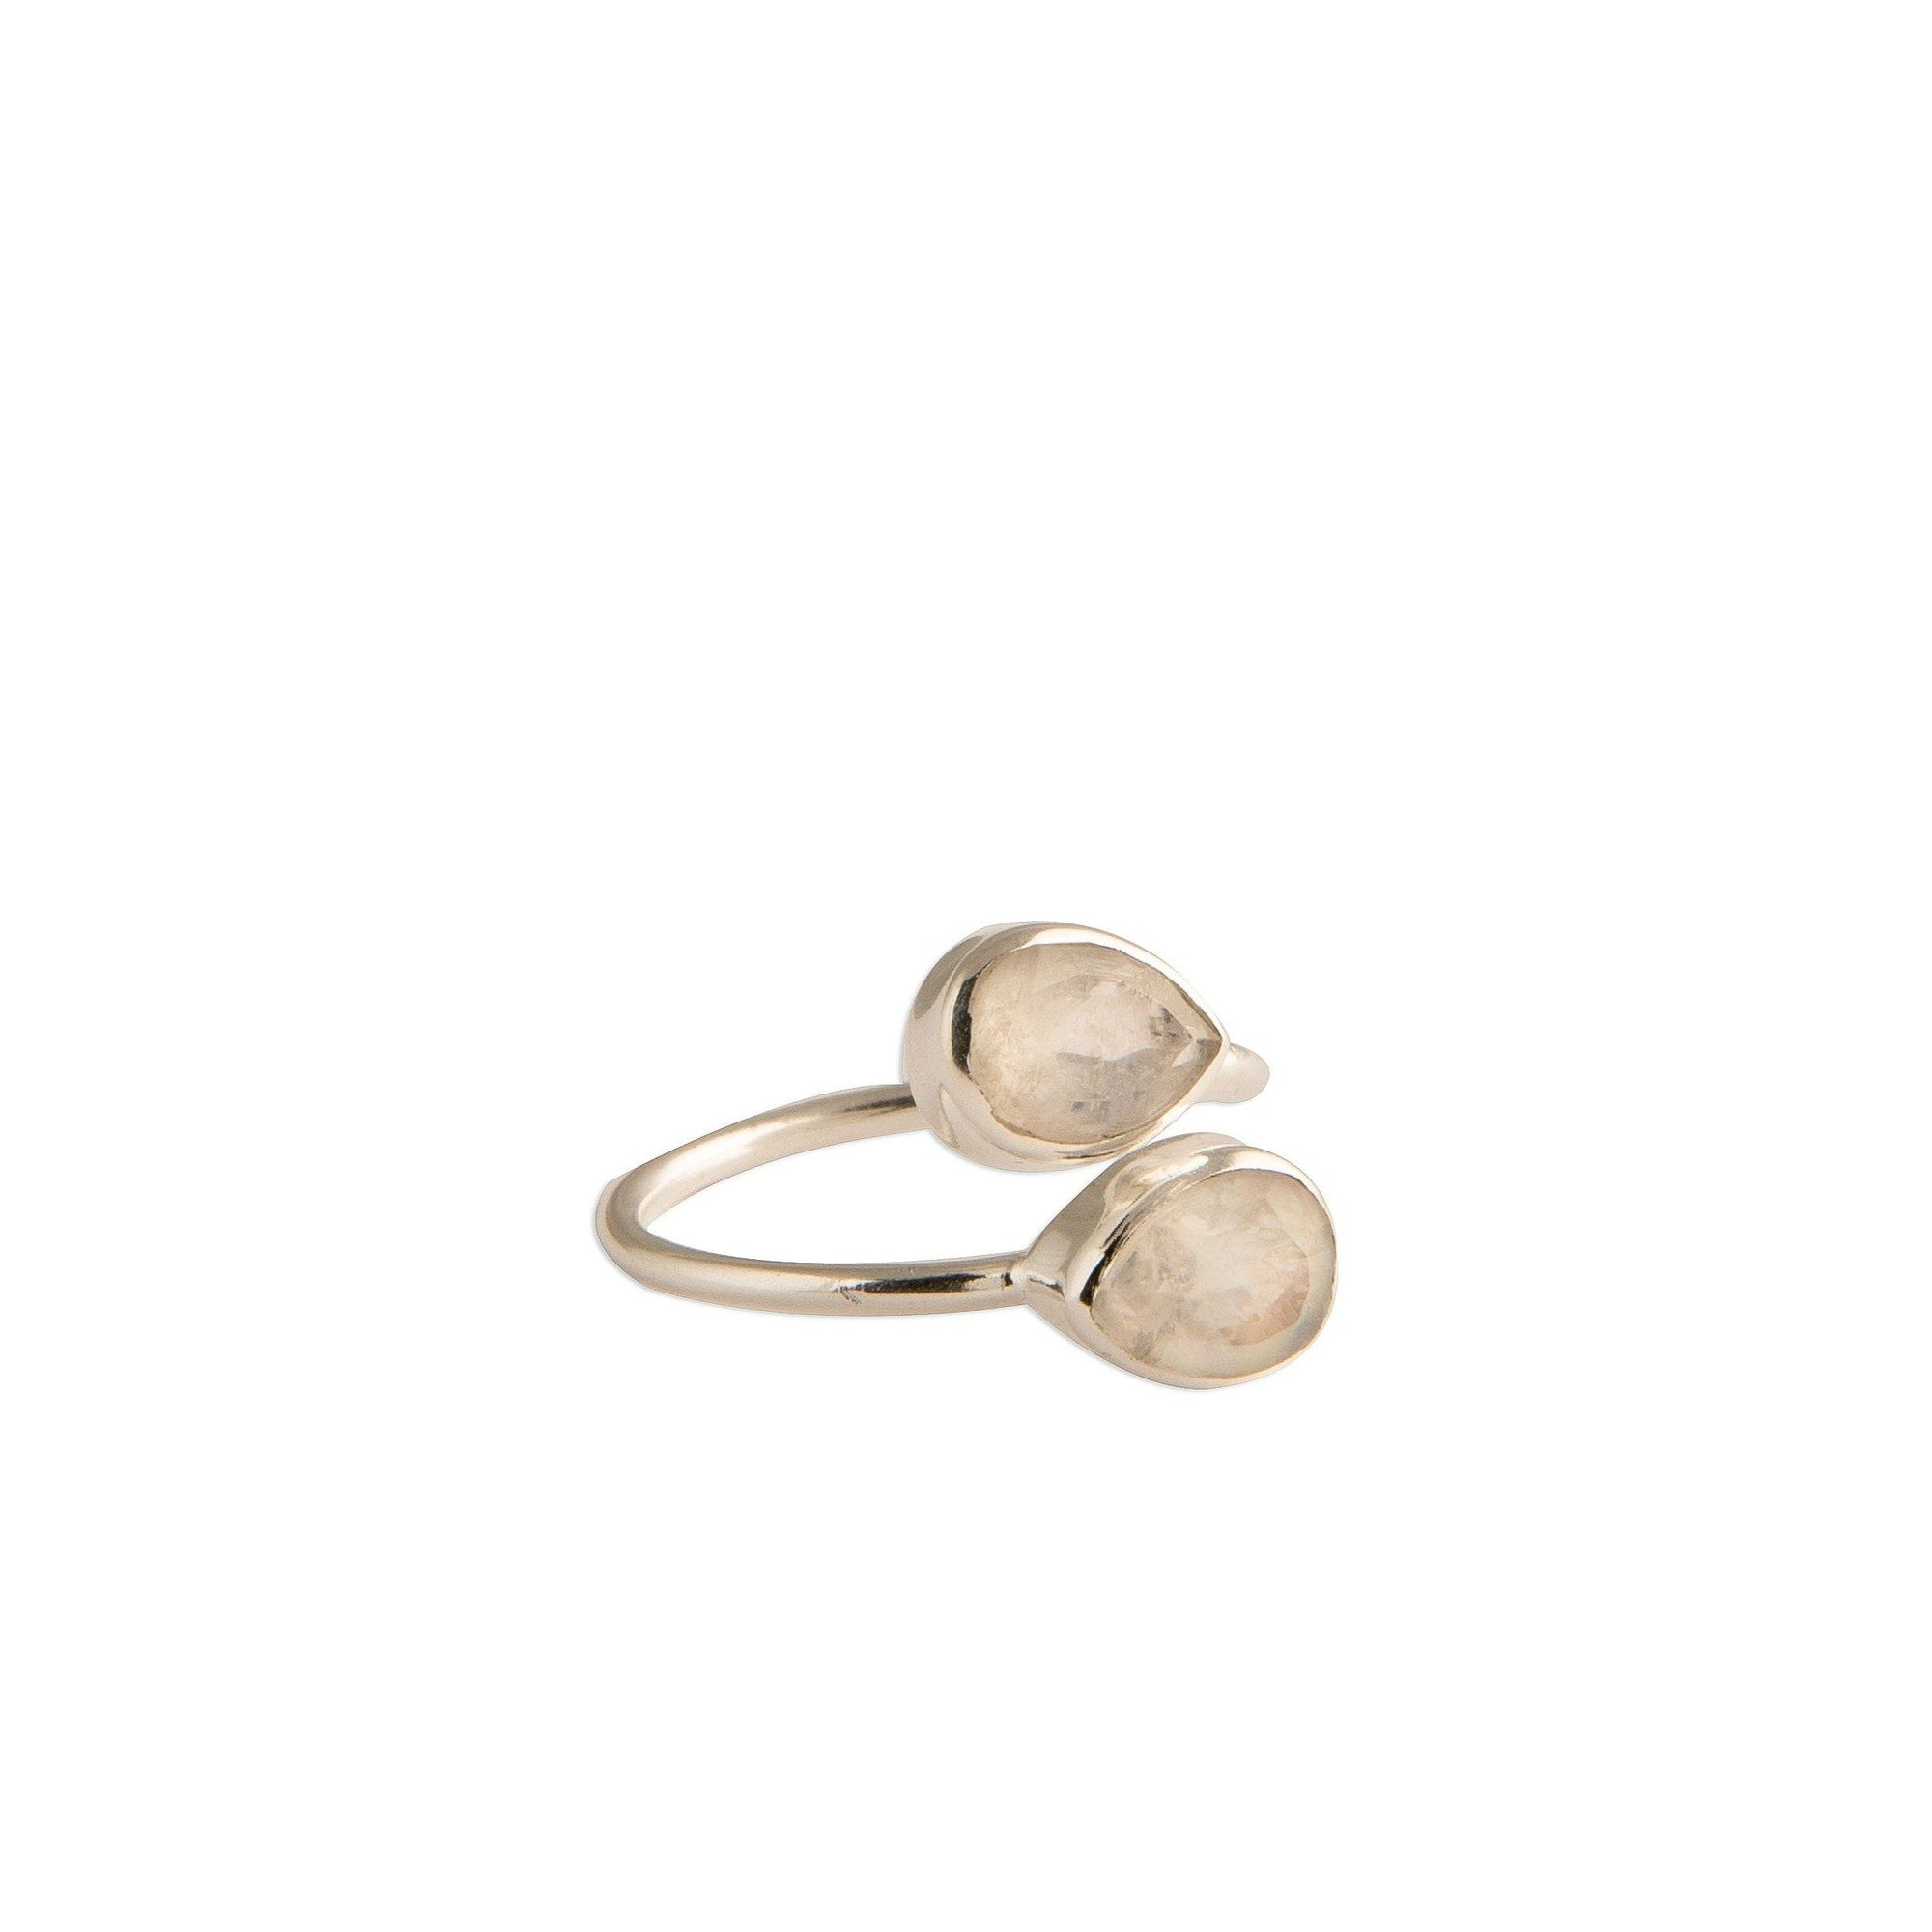 Sasha double tear-drop adjustable silver ring in moonstone - Ring